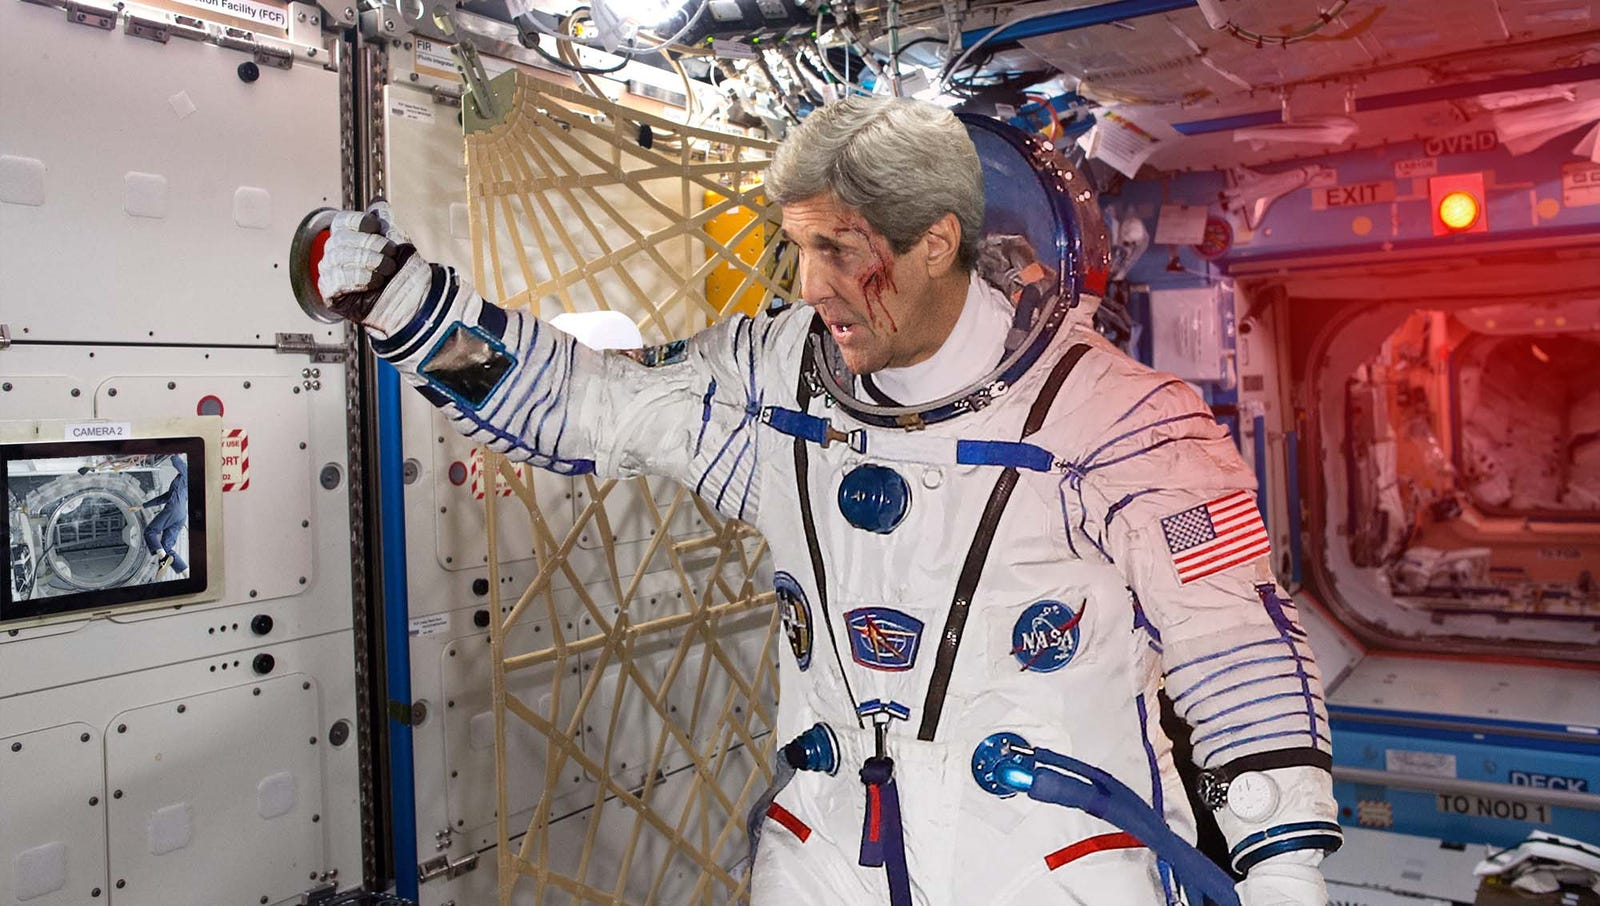 John Kerry Jettisons Russian Henchmen From International Space Station Airlock